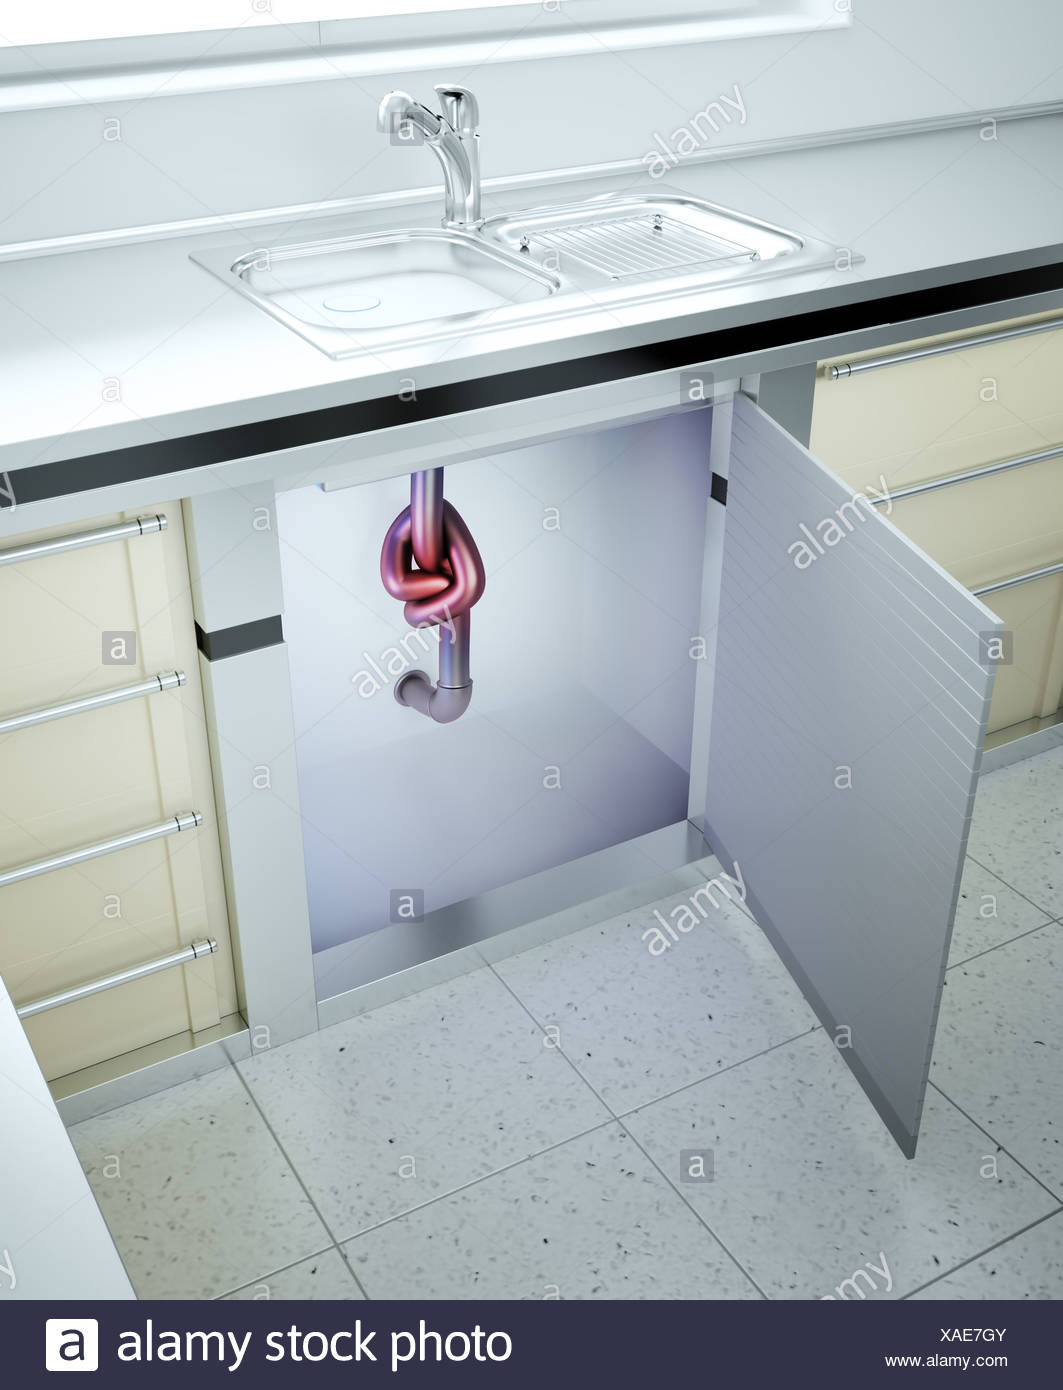 Clogged sink Stock Photo: 281825739 - Alamy